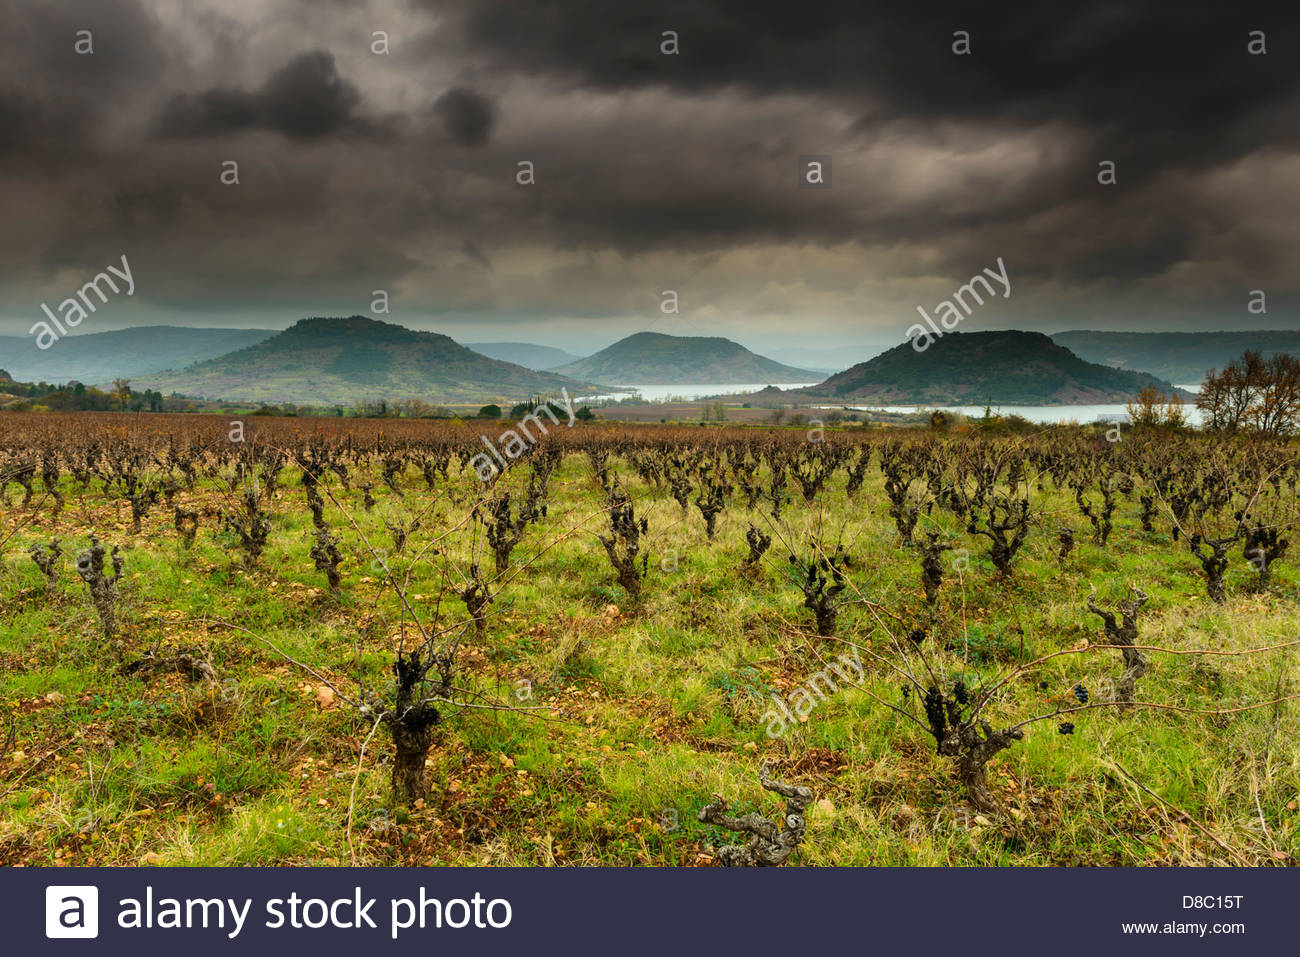 Bare vines in vineyard with Le Lac du Salagou in the background 1300x957